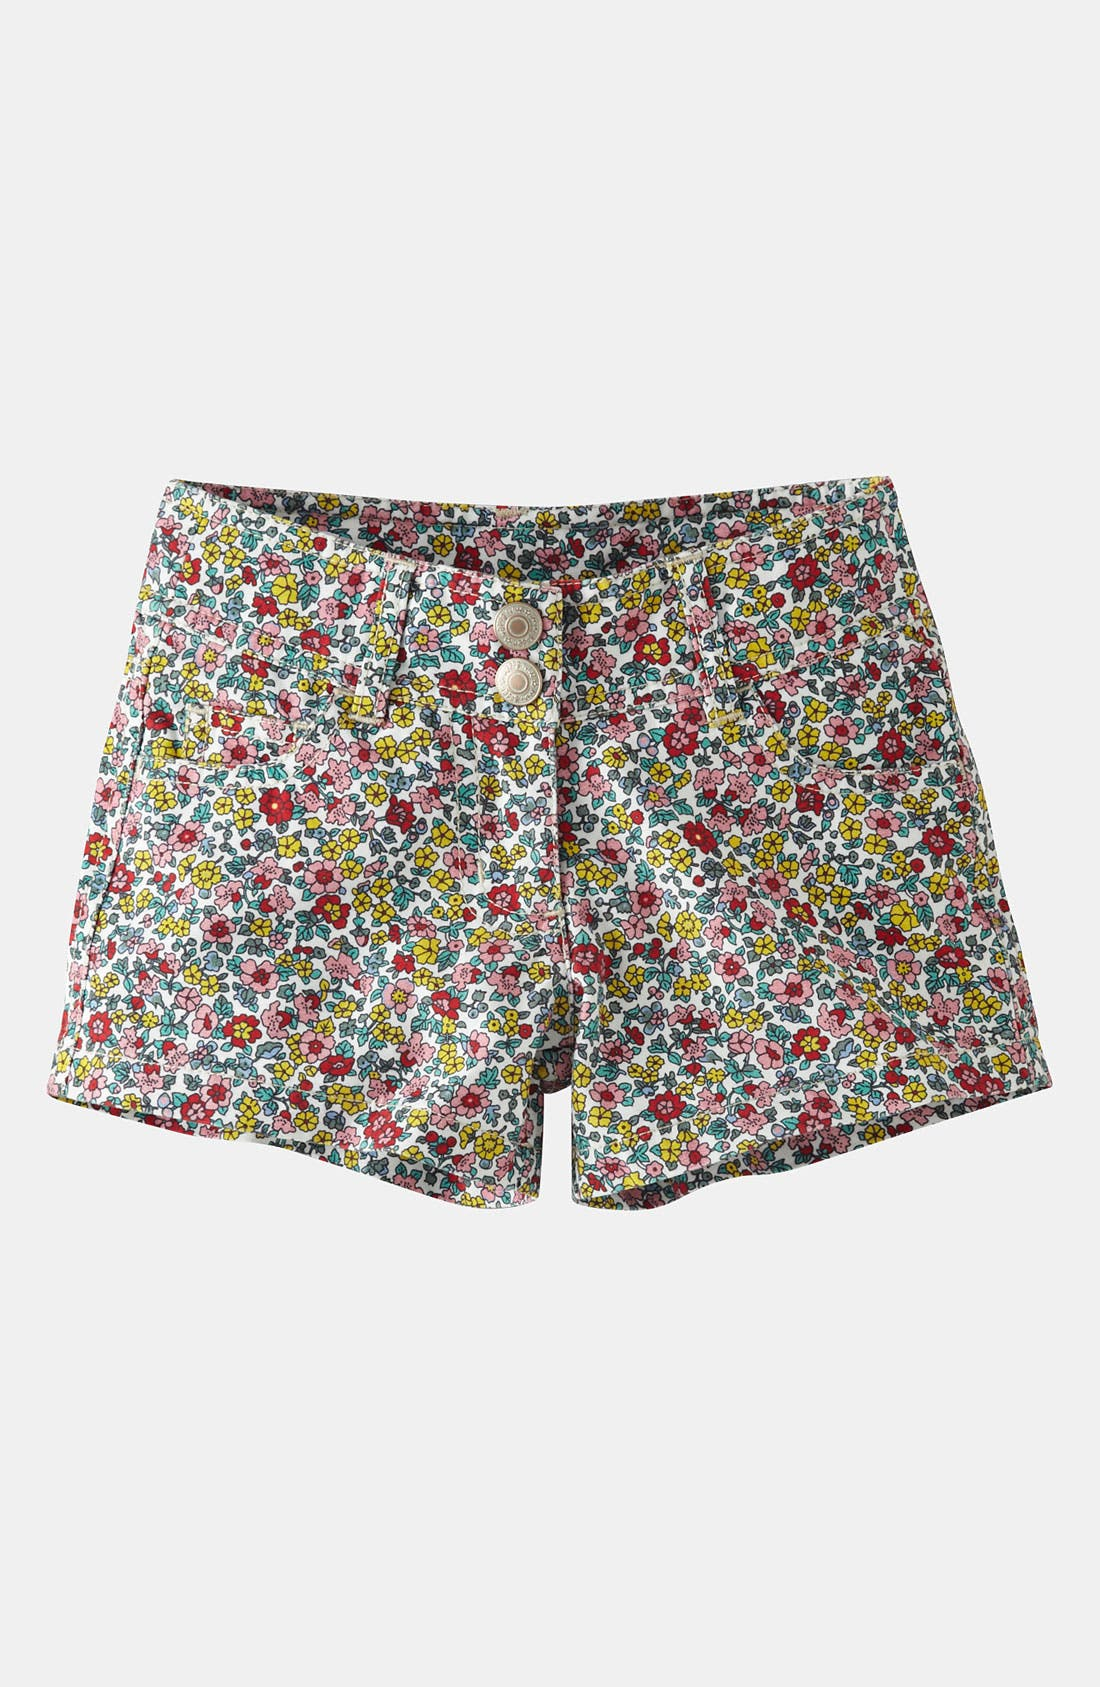 Alternate Image 1 Selected - Mini Boden 'Heart Pocket' Denim Shorts (Little Girls & Big Girls)